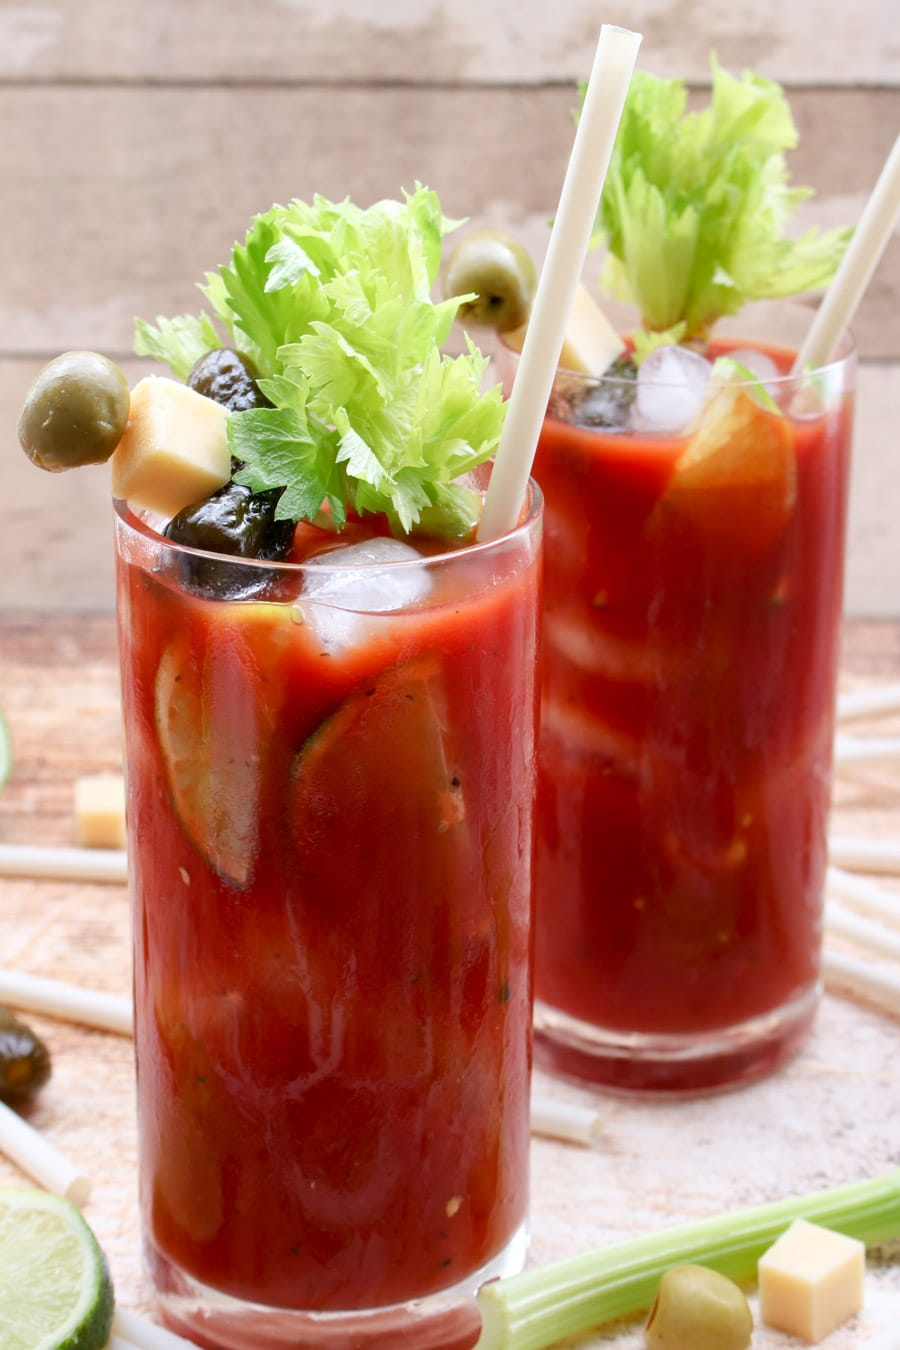 Two glasses of blood marys with celery stalks